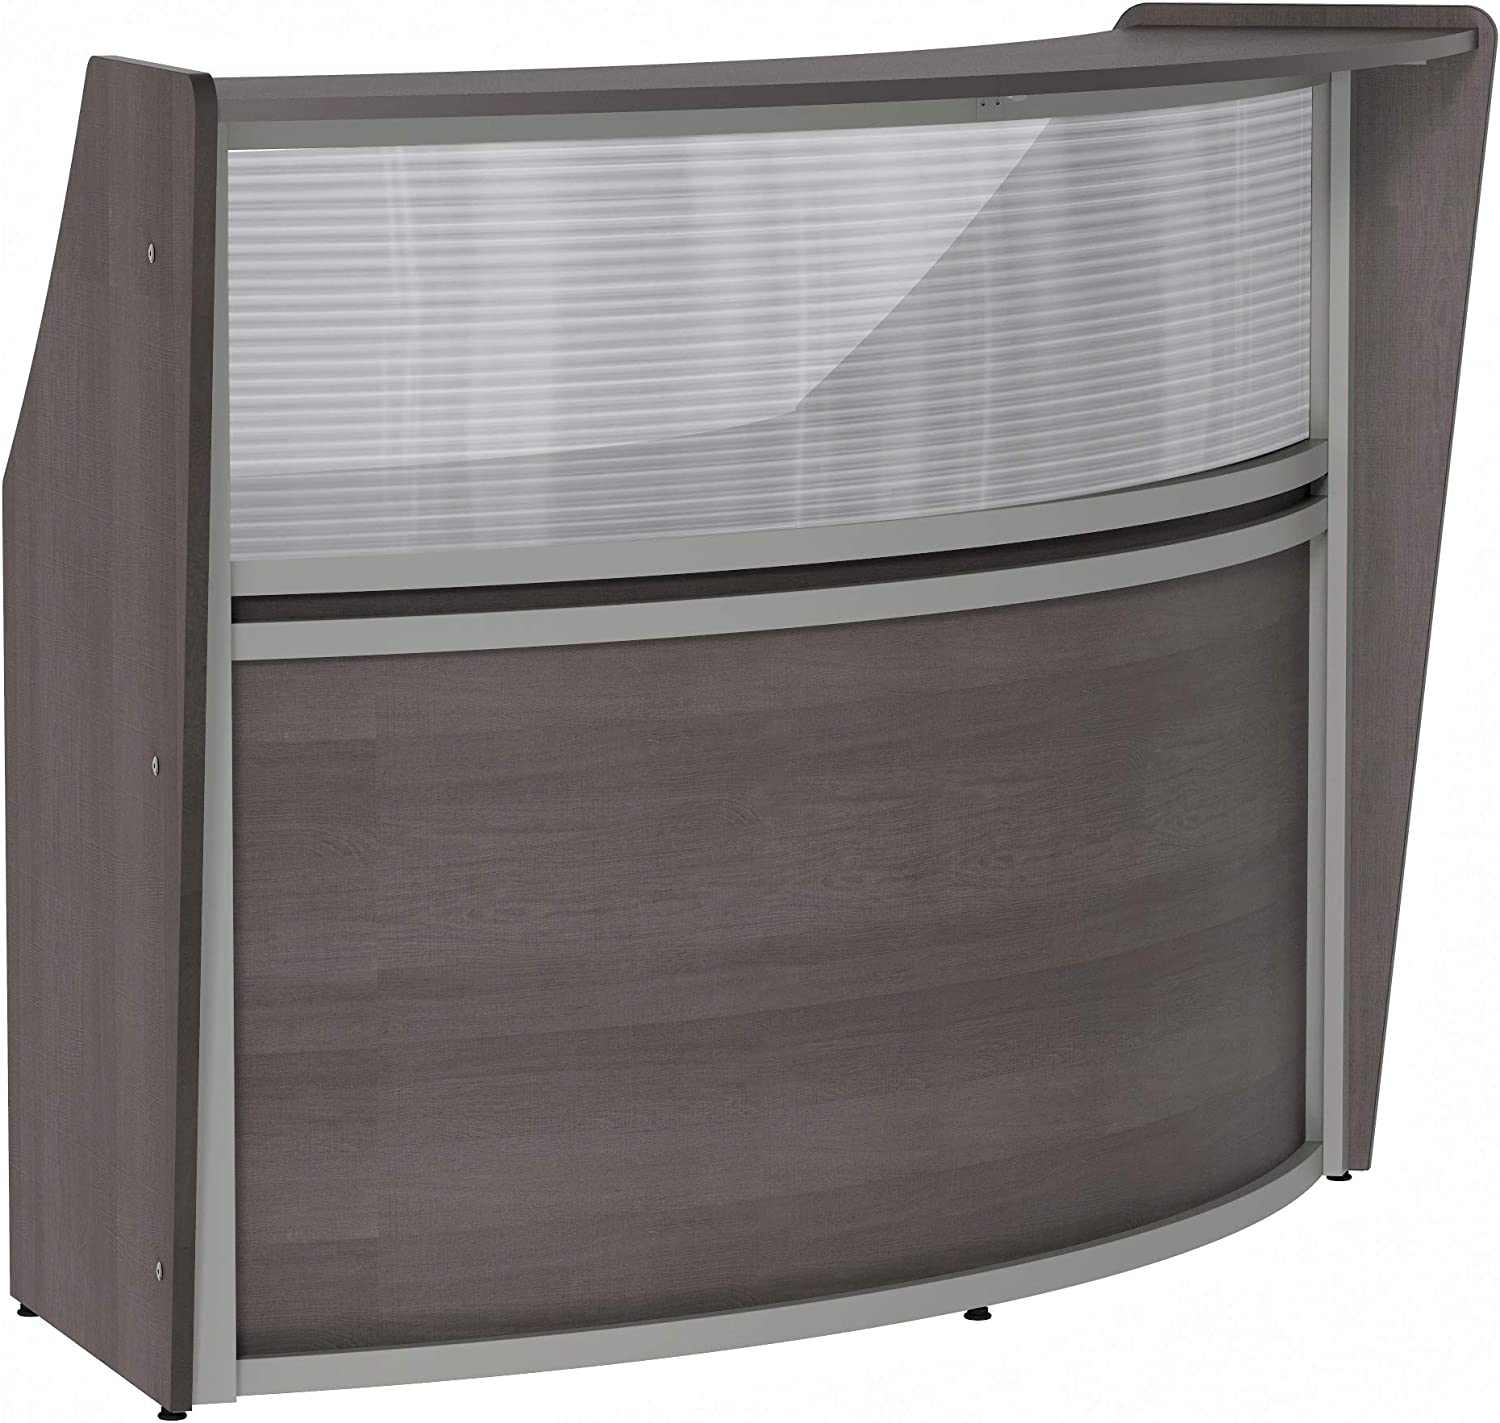 Linea Italia Curved Max 59% OFF Office Austin Mall Clear Panel to Single Assembly Easy